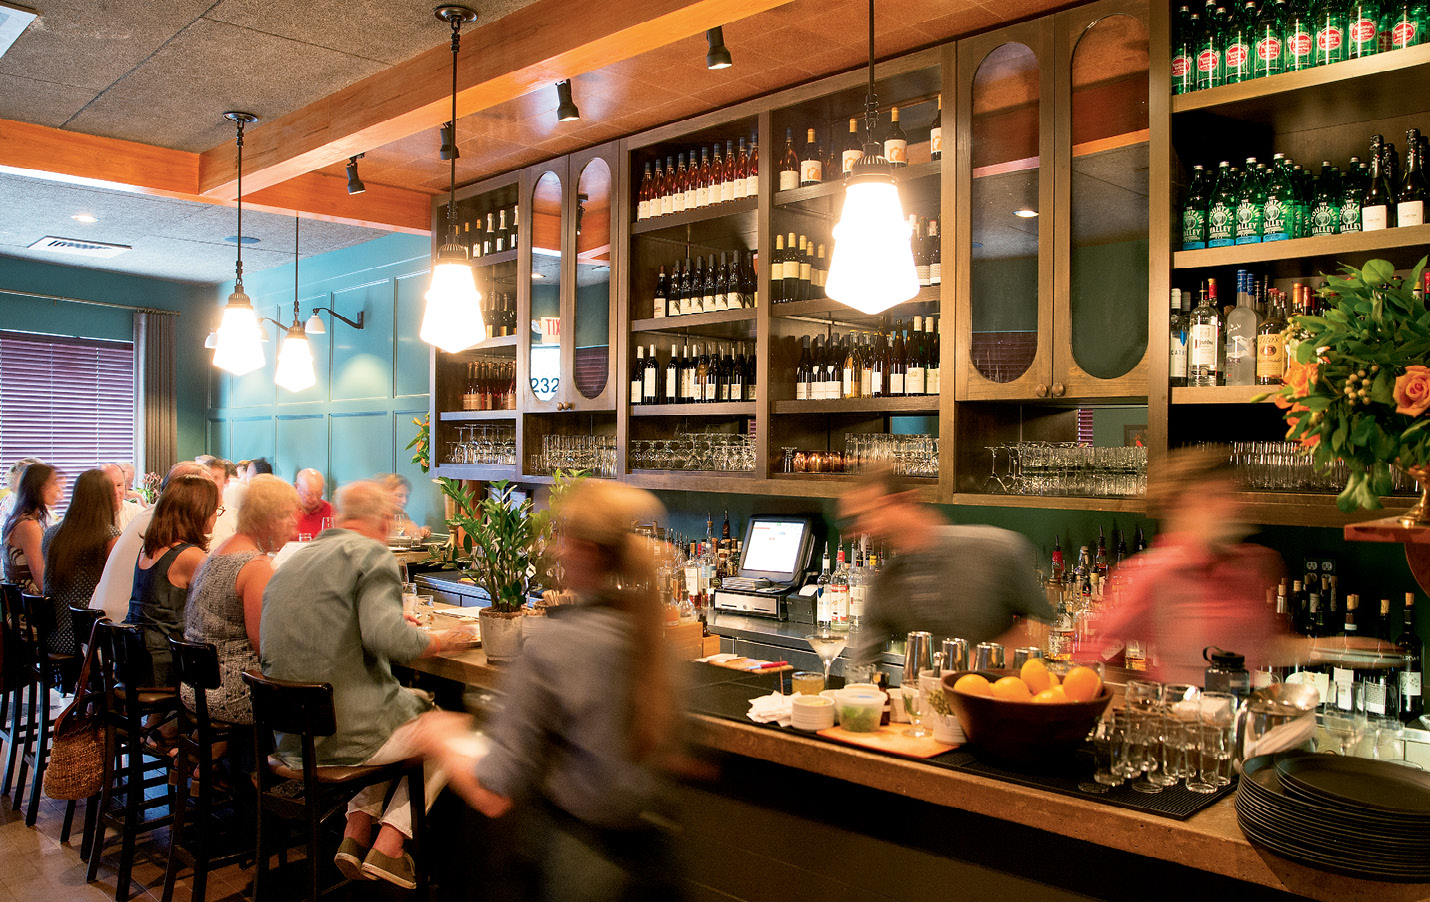 Bar scene: FIG's wine program earned a James Beard Award nomination in both 2015 and 2016.